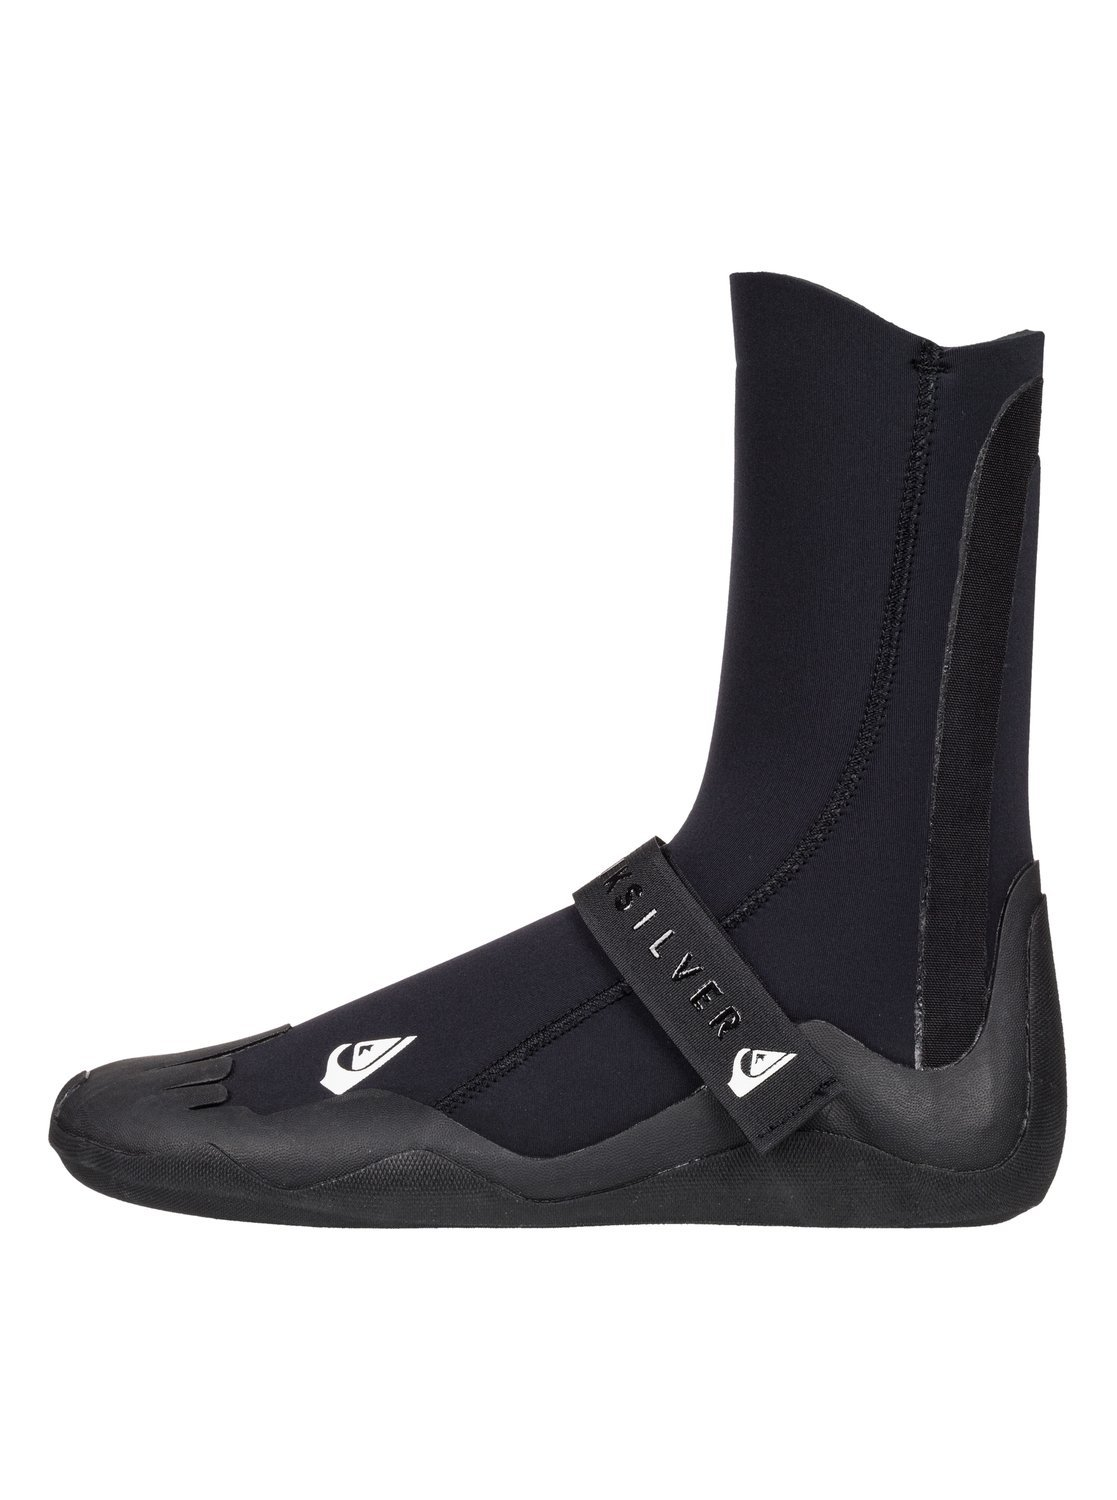 Quiksilver Mens 5Mm Syncro - Round Toe Surf Boots Round Toe Surf Boots Black 12